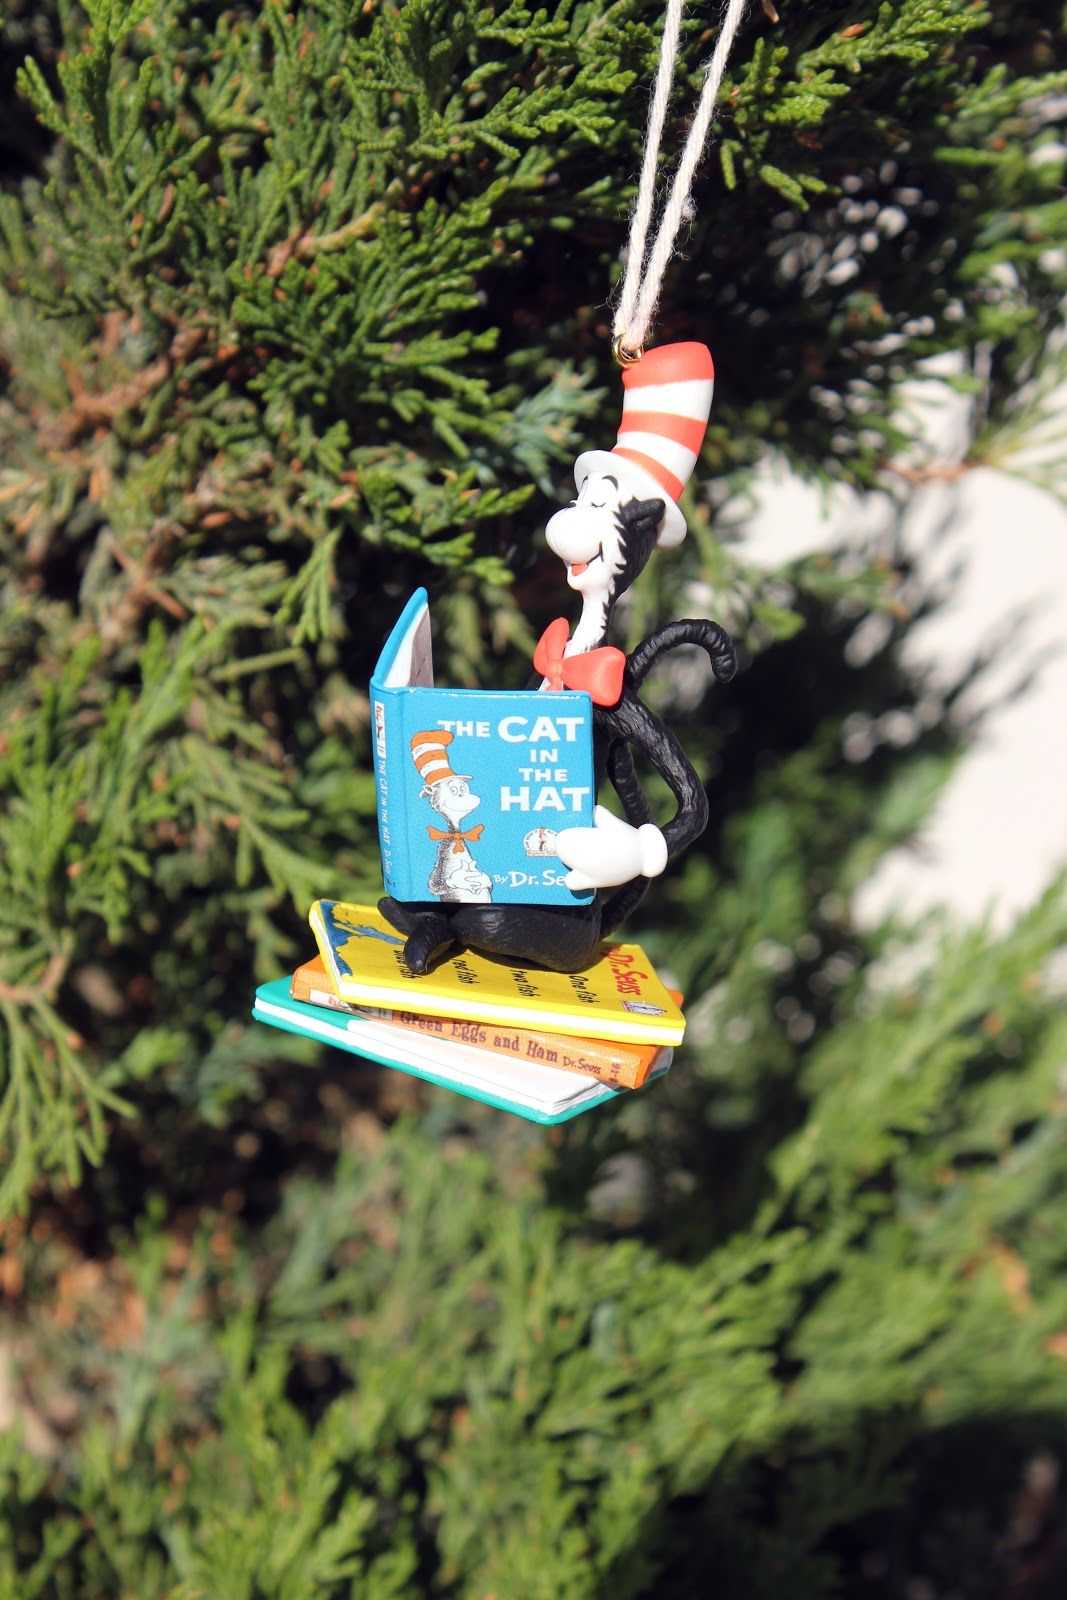 Cat in the hat ornaments - My Parents Started A Tradition Of Giving My Siblings And I An Ornament Each Year Based On Something Big That Has Happened In Our Lives That Year Or